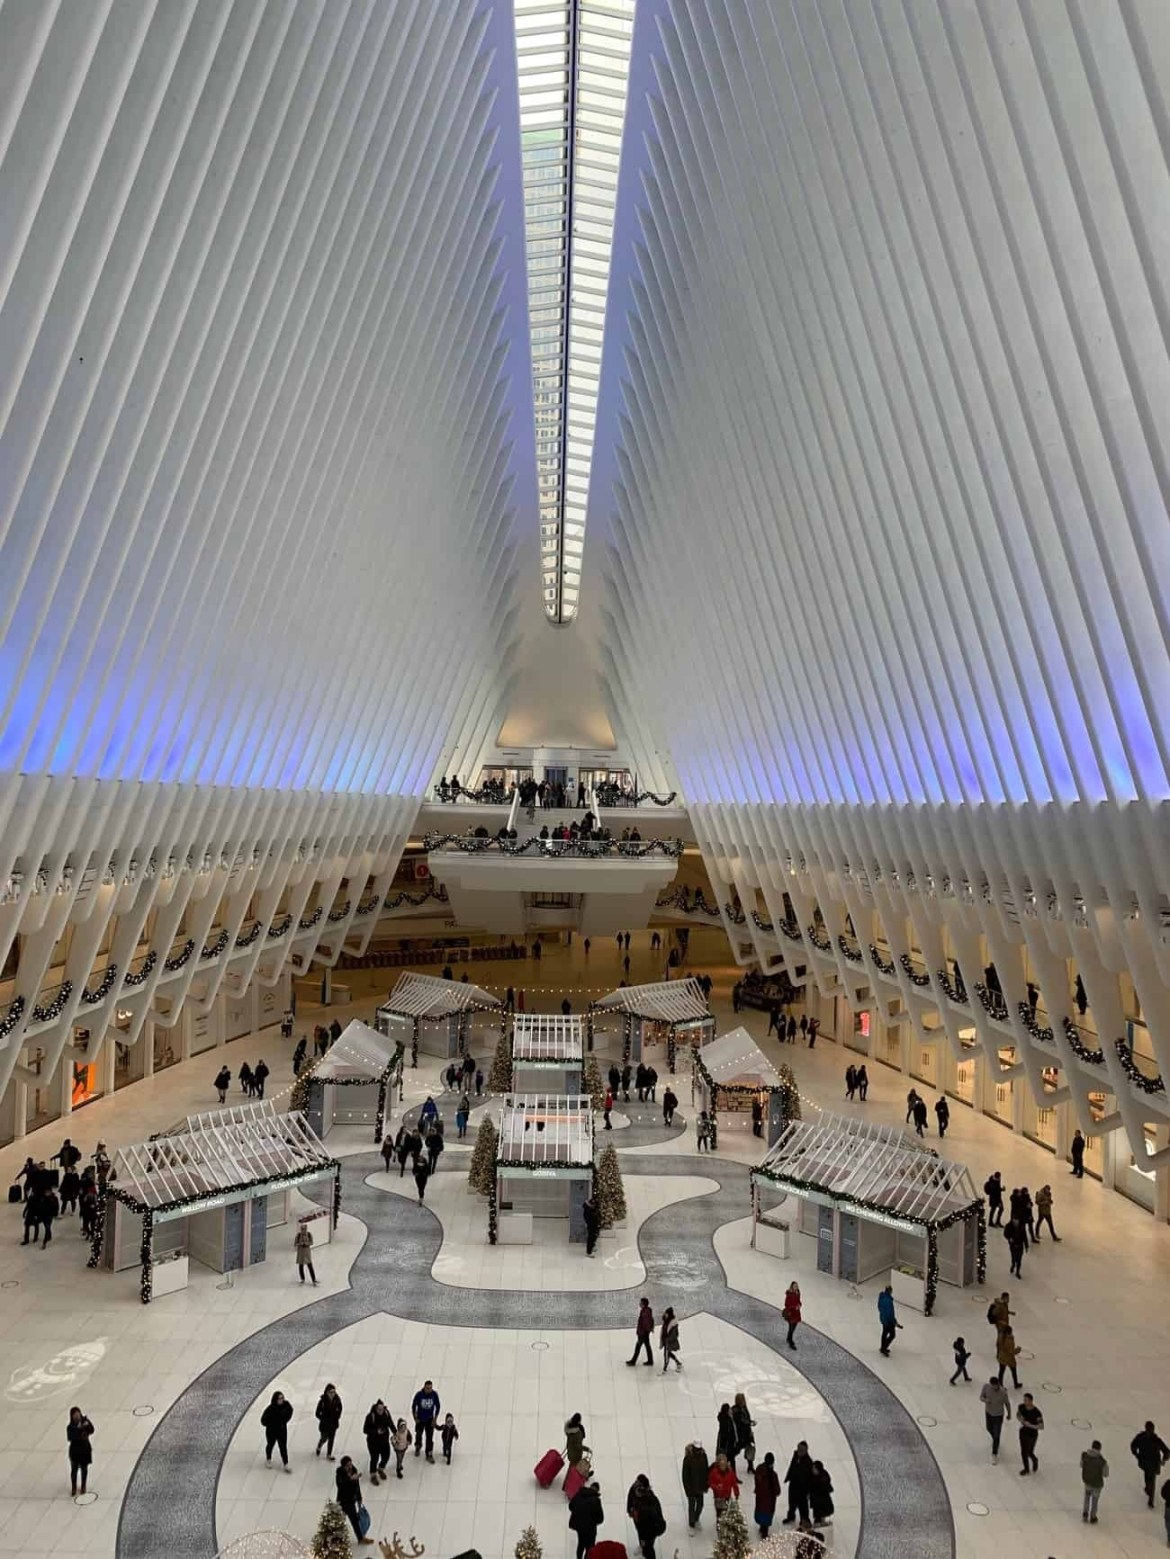 Oculus Transit Hub World Trade Centre